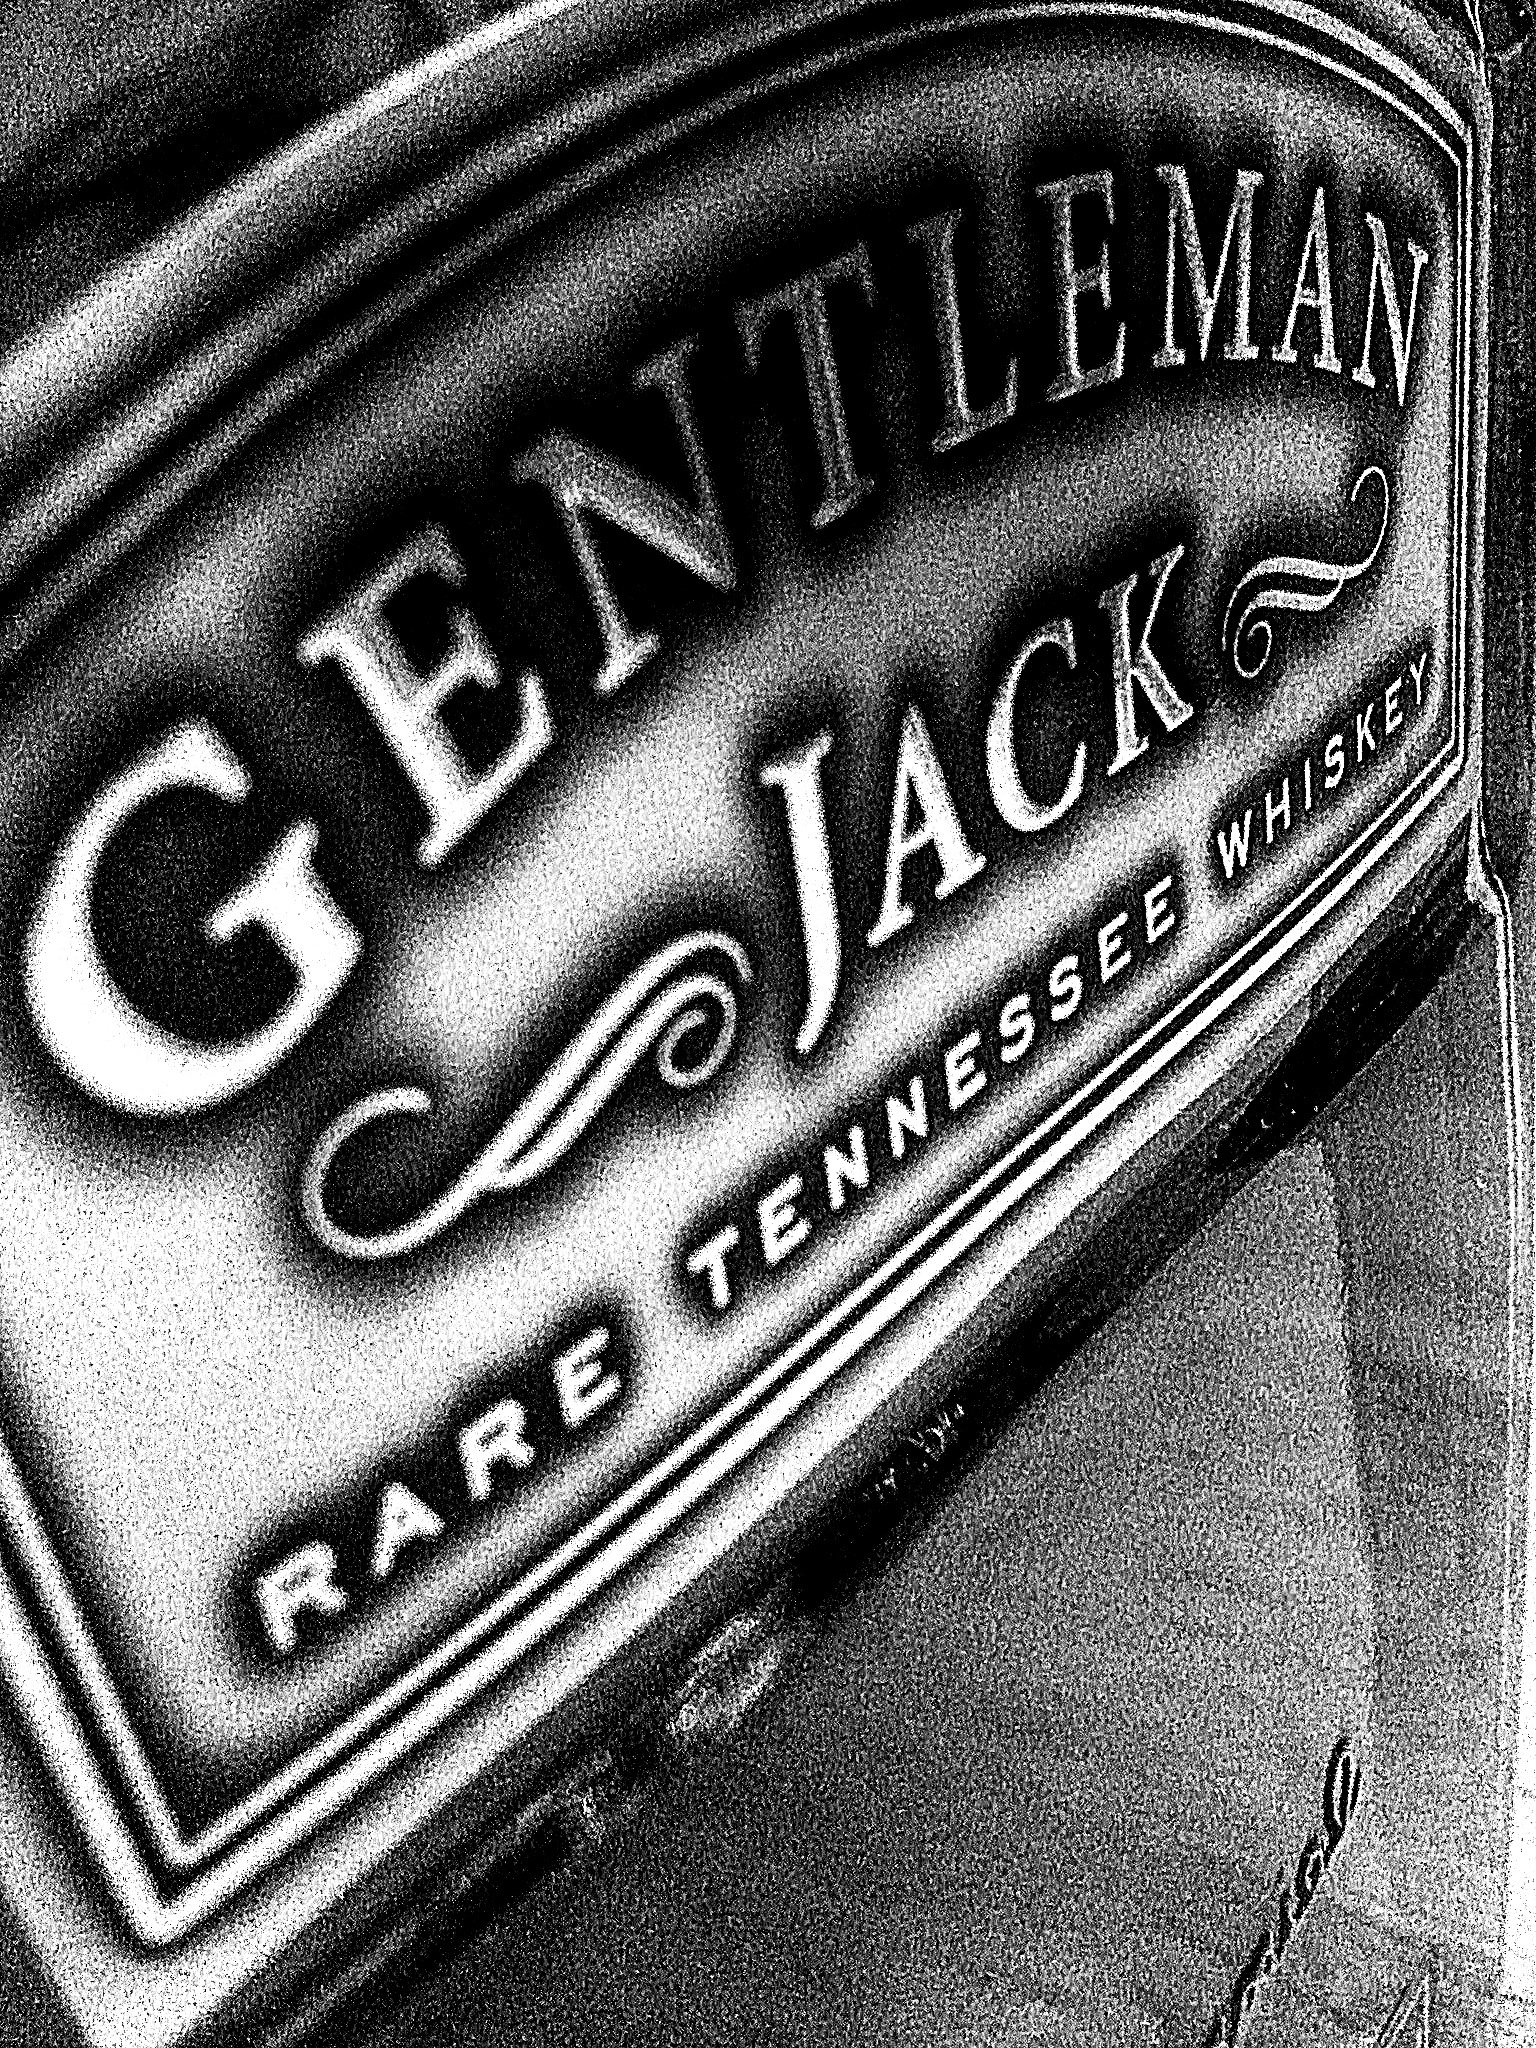 Gentleman Jack - Twice Mellowed Rare Tennessee Whiskey